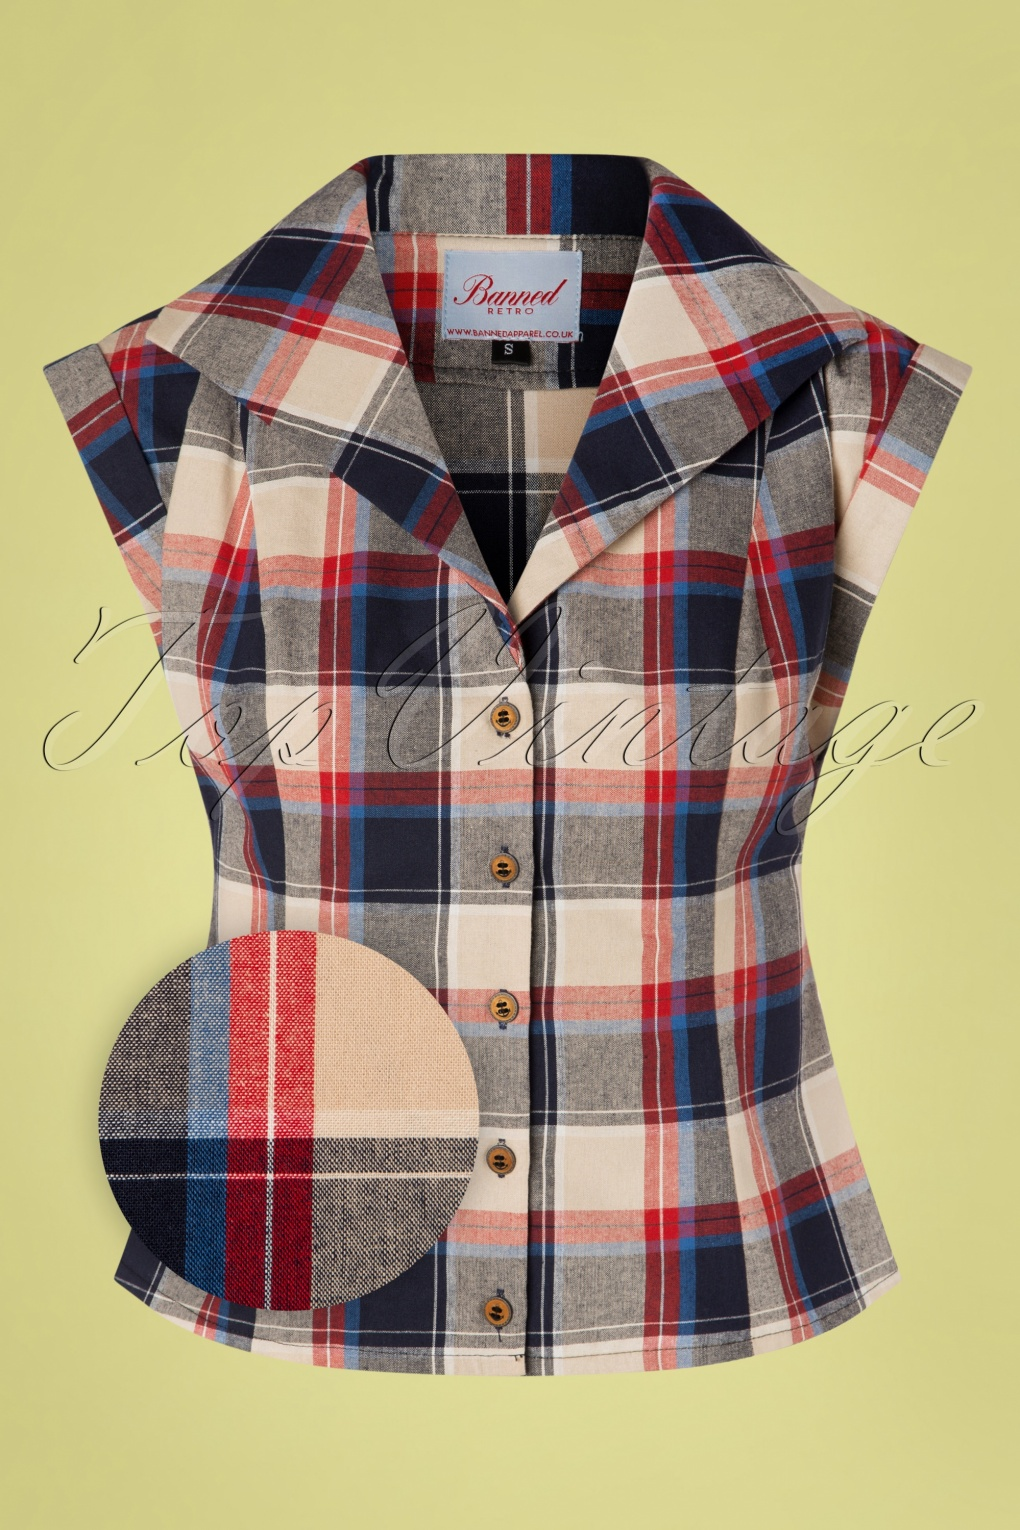 What Did Women Wear in the 1950s? 1950s Fashion Guide 40s Summer Seaside Check Blouse in Navy £24.95 AT vintagedancer.com